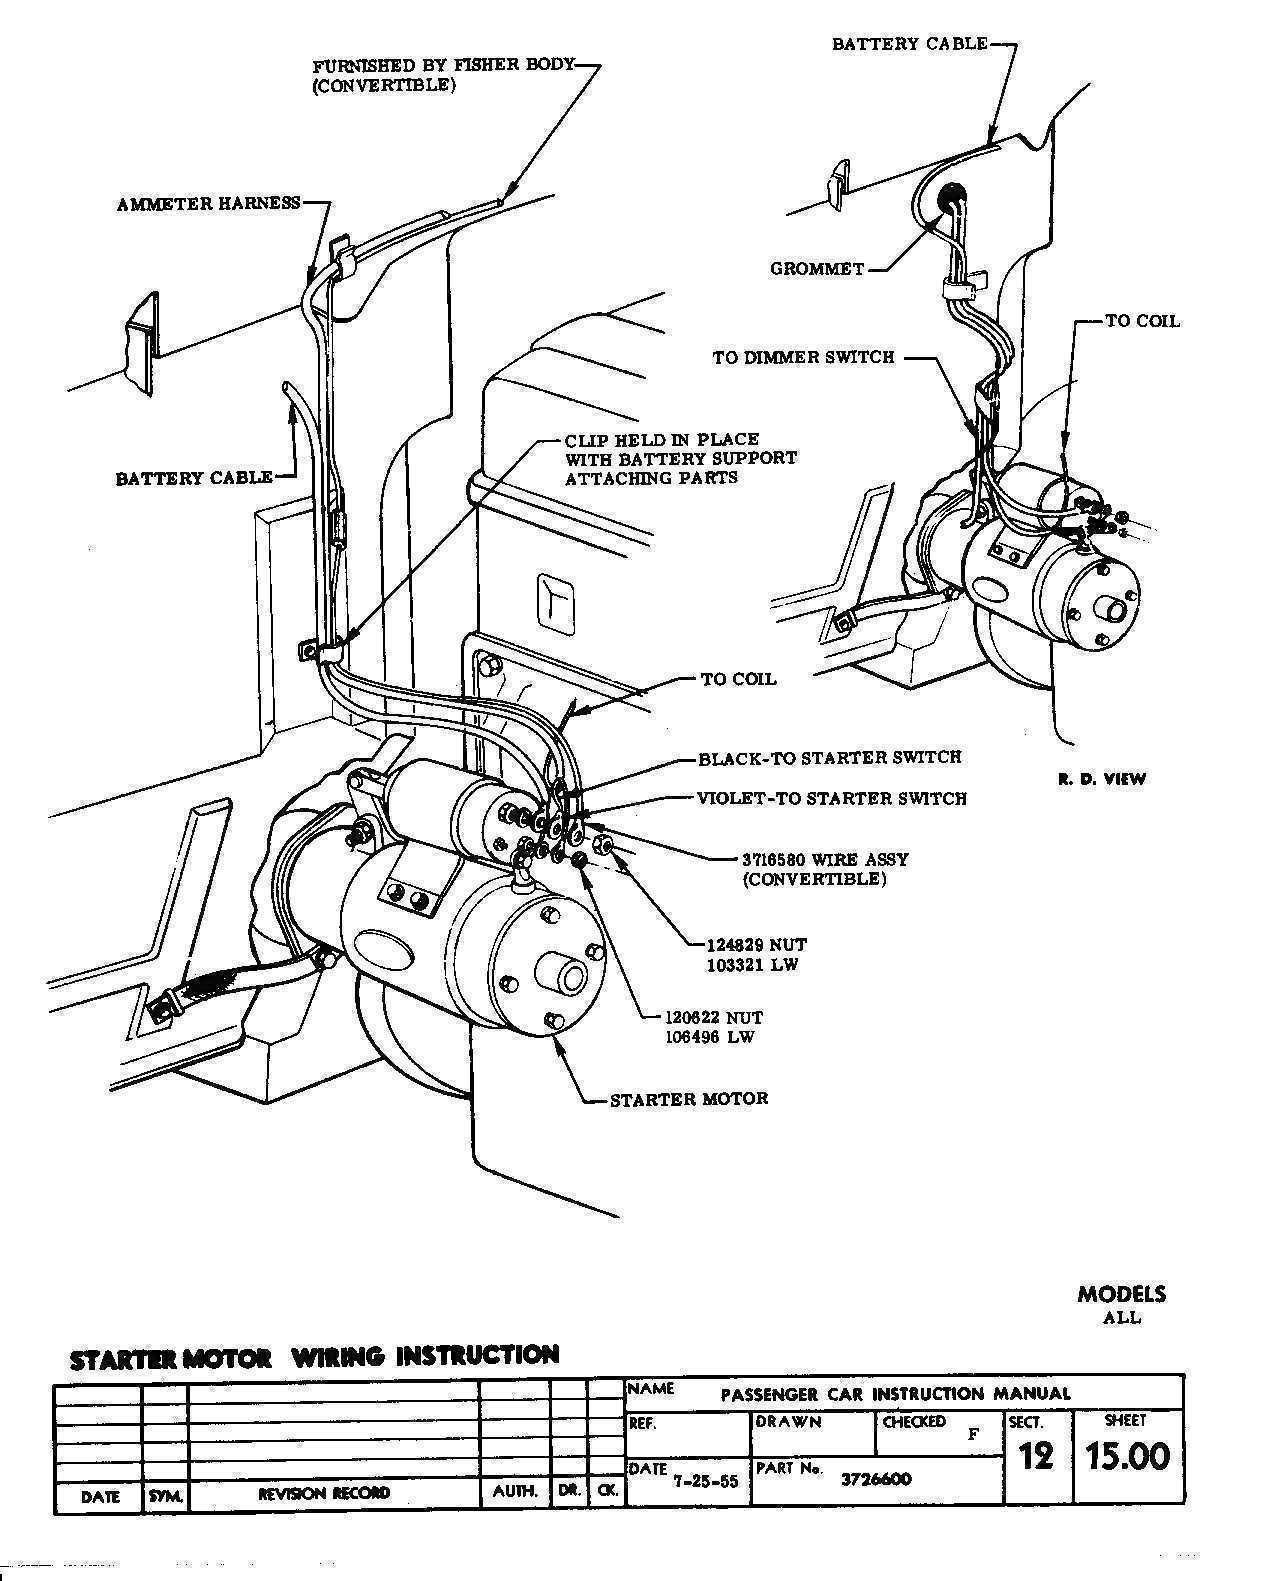 diagram] 86 chevy starter solenoid wiring diagram full version hd quality wiring  diagram - webmarblediagrams.potrosuaemfc.mx  potros uaem fc